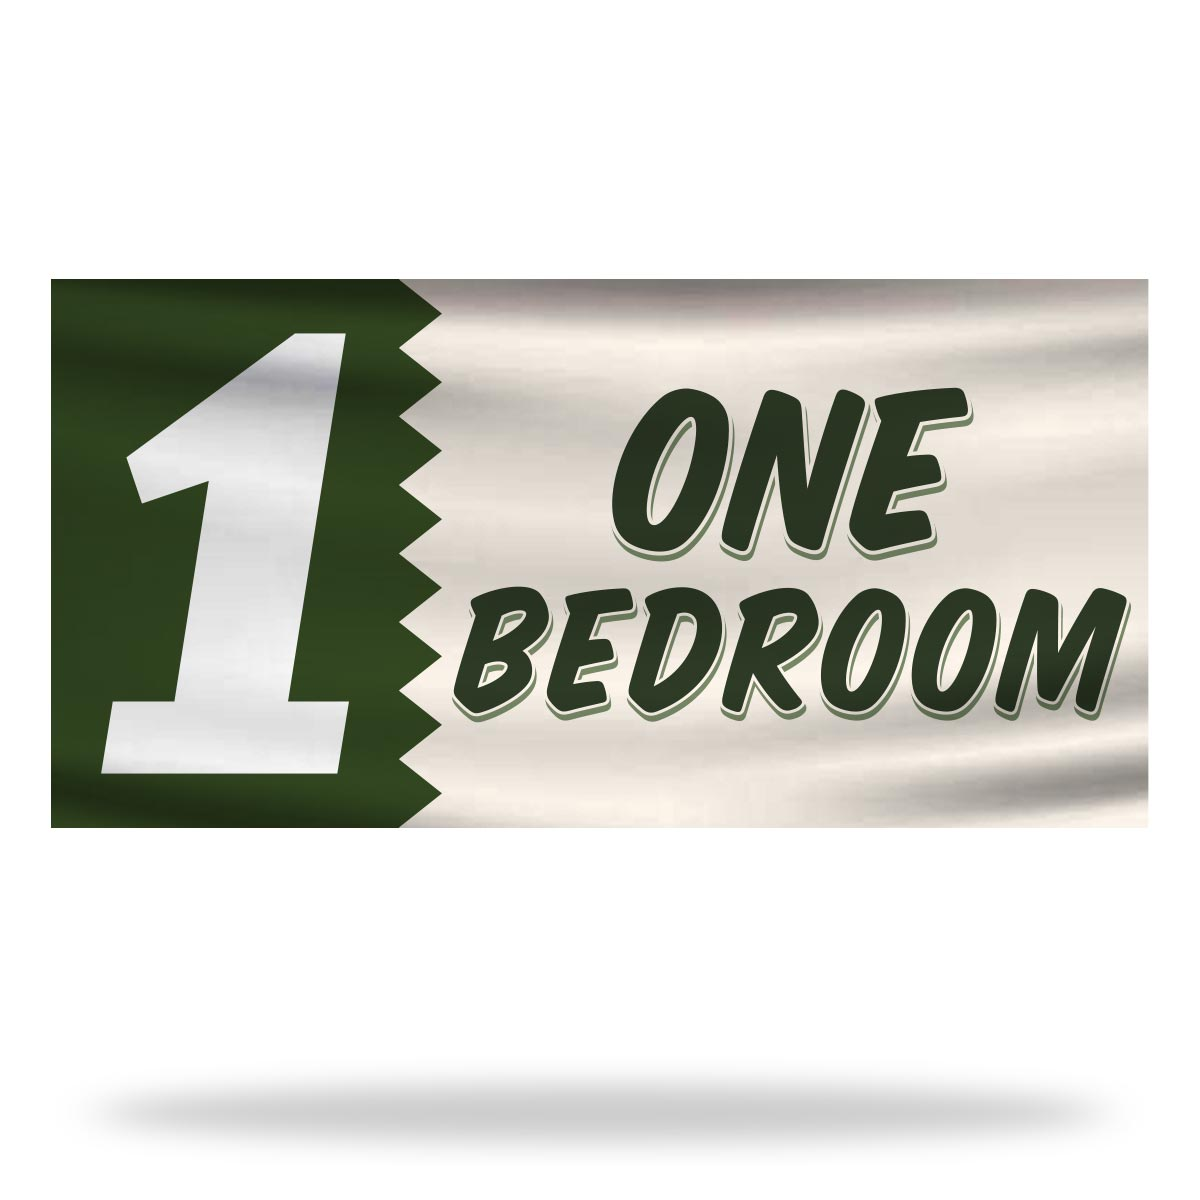 1 Bed Room Flags & Banners Design